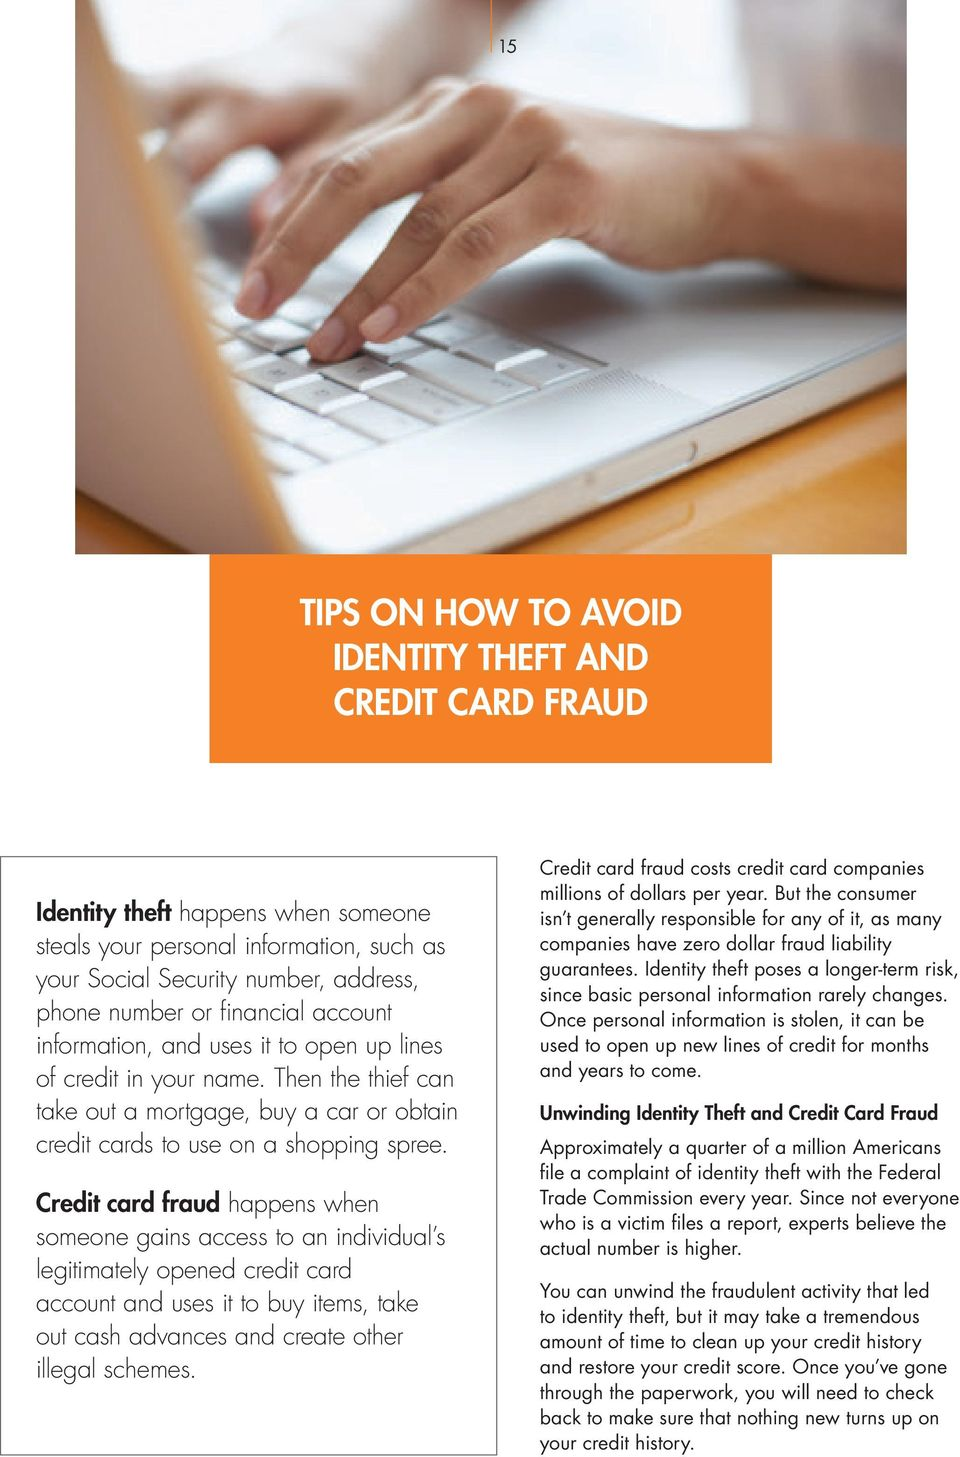 Credit card fraud happens when someone gains access to an individual s legitimately opened credit card account and uses it to buy items, take out cash advances and create other illegal schemes.